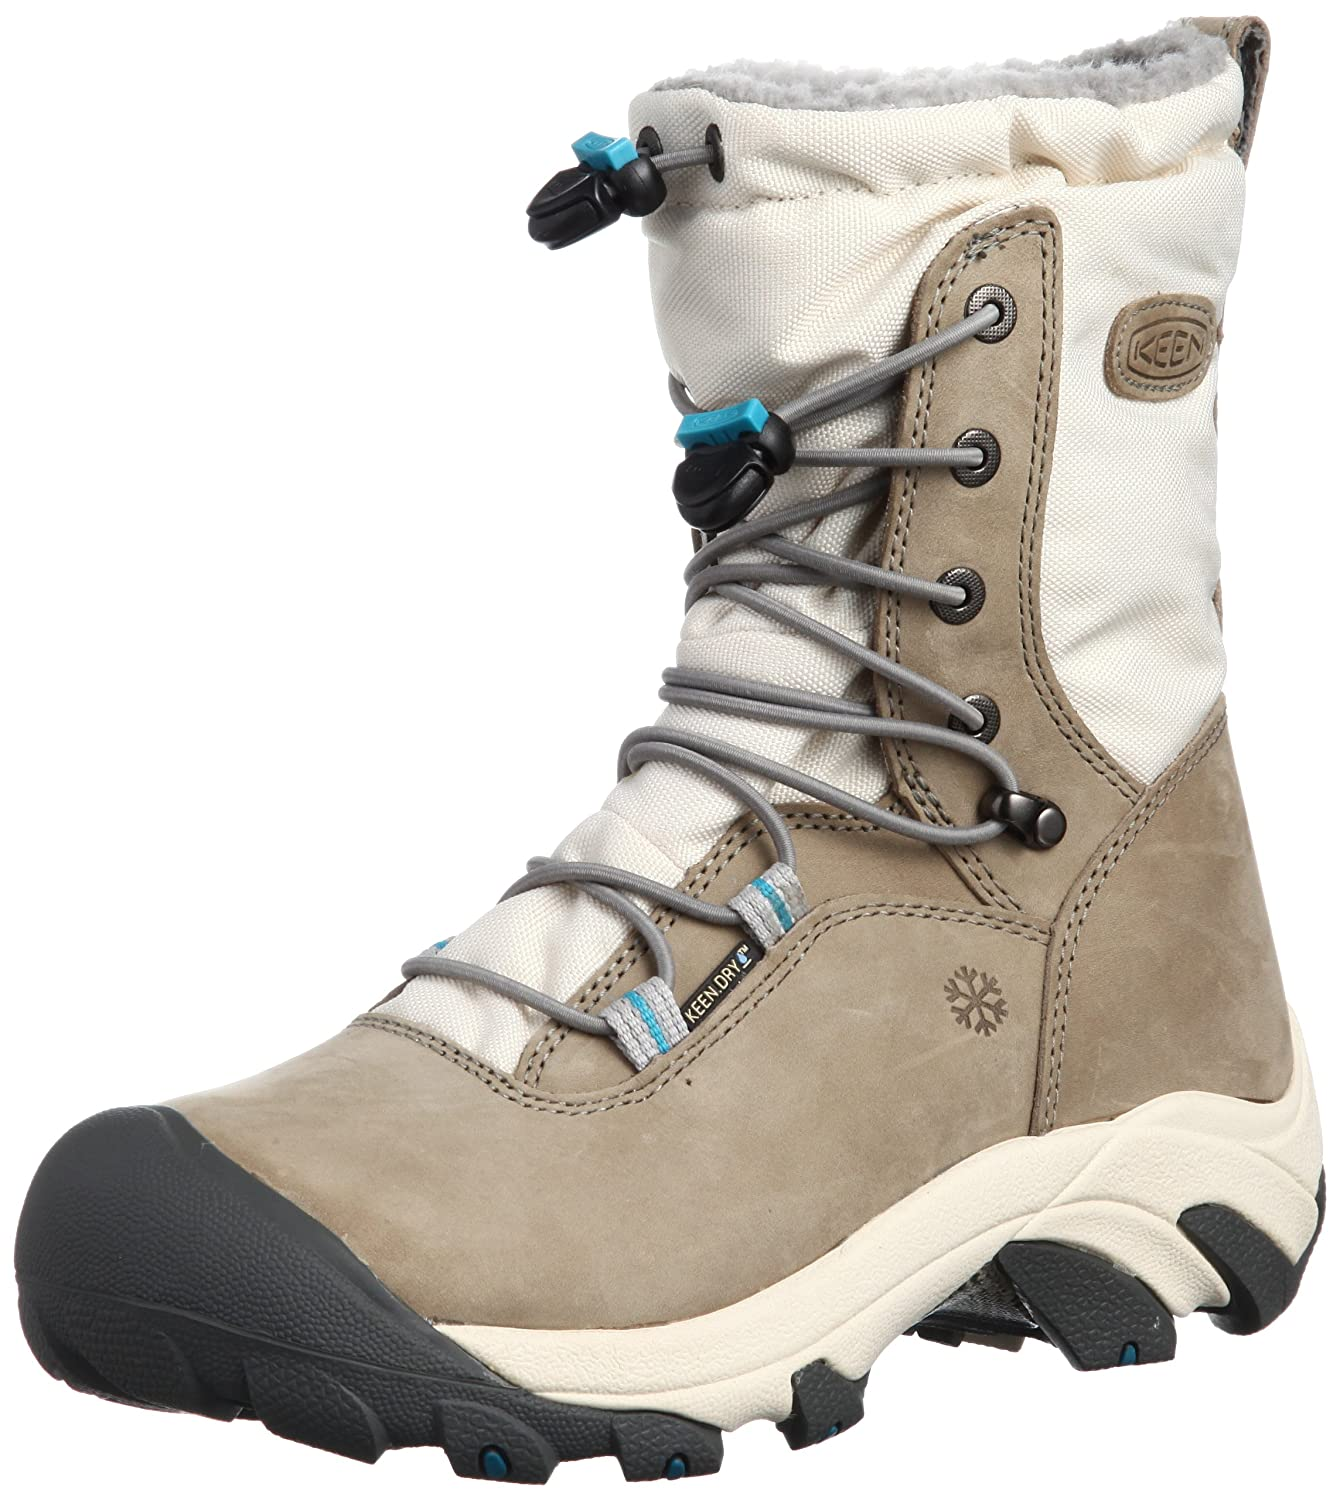 Amazon.com: Keen Women s Wilma encaje bota de invierno: Shoes